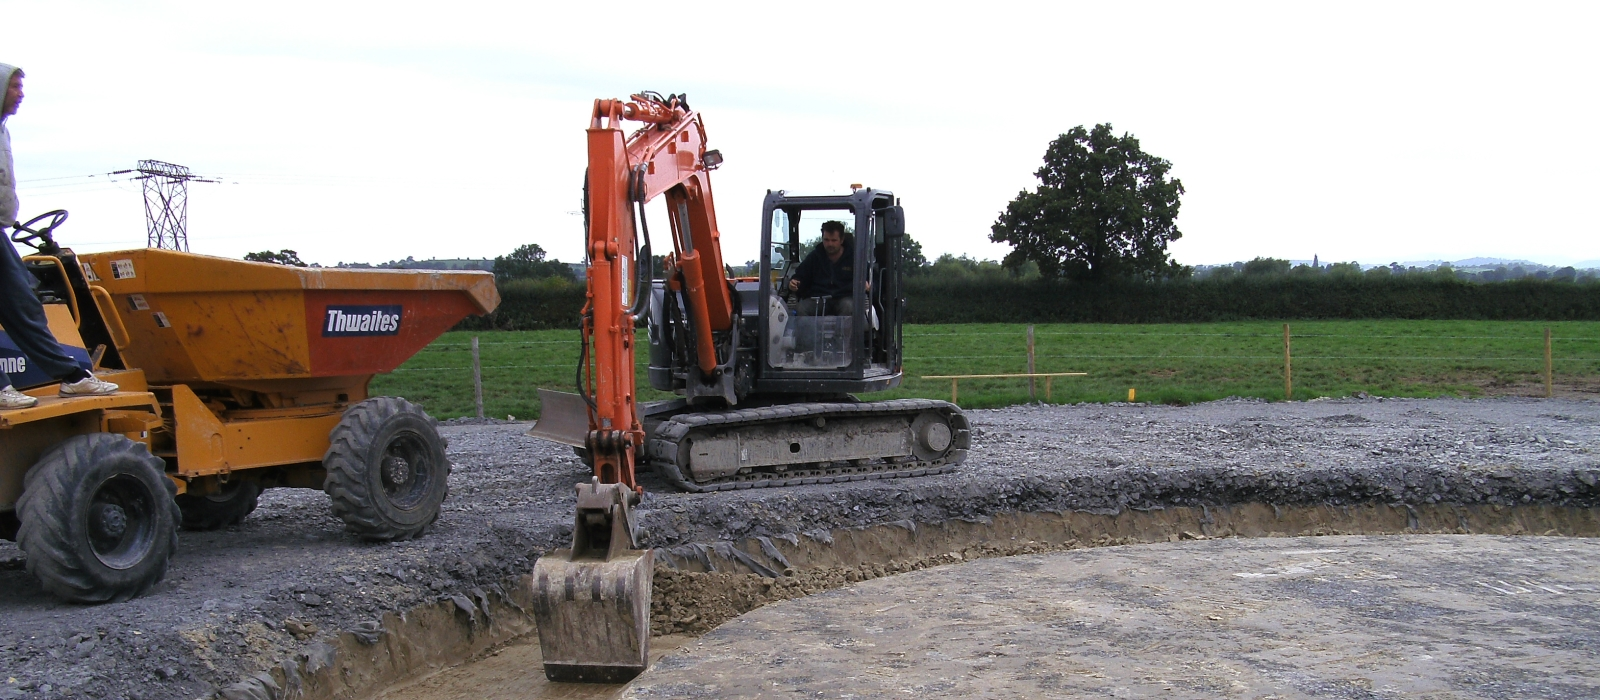 A Modern Excavator Digging up Dirt